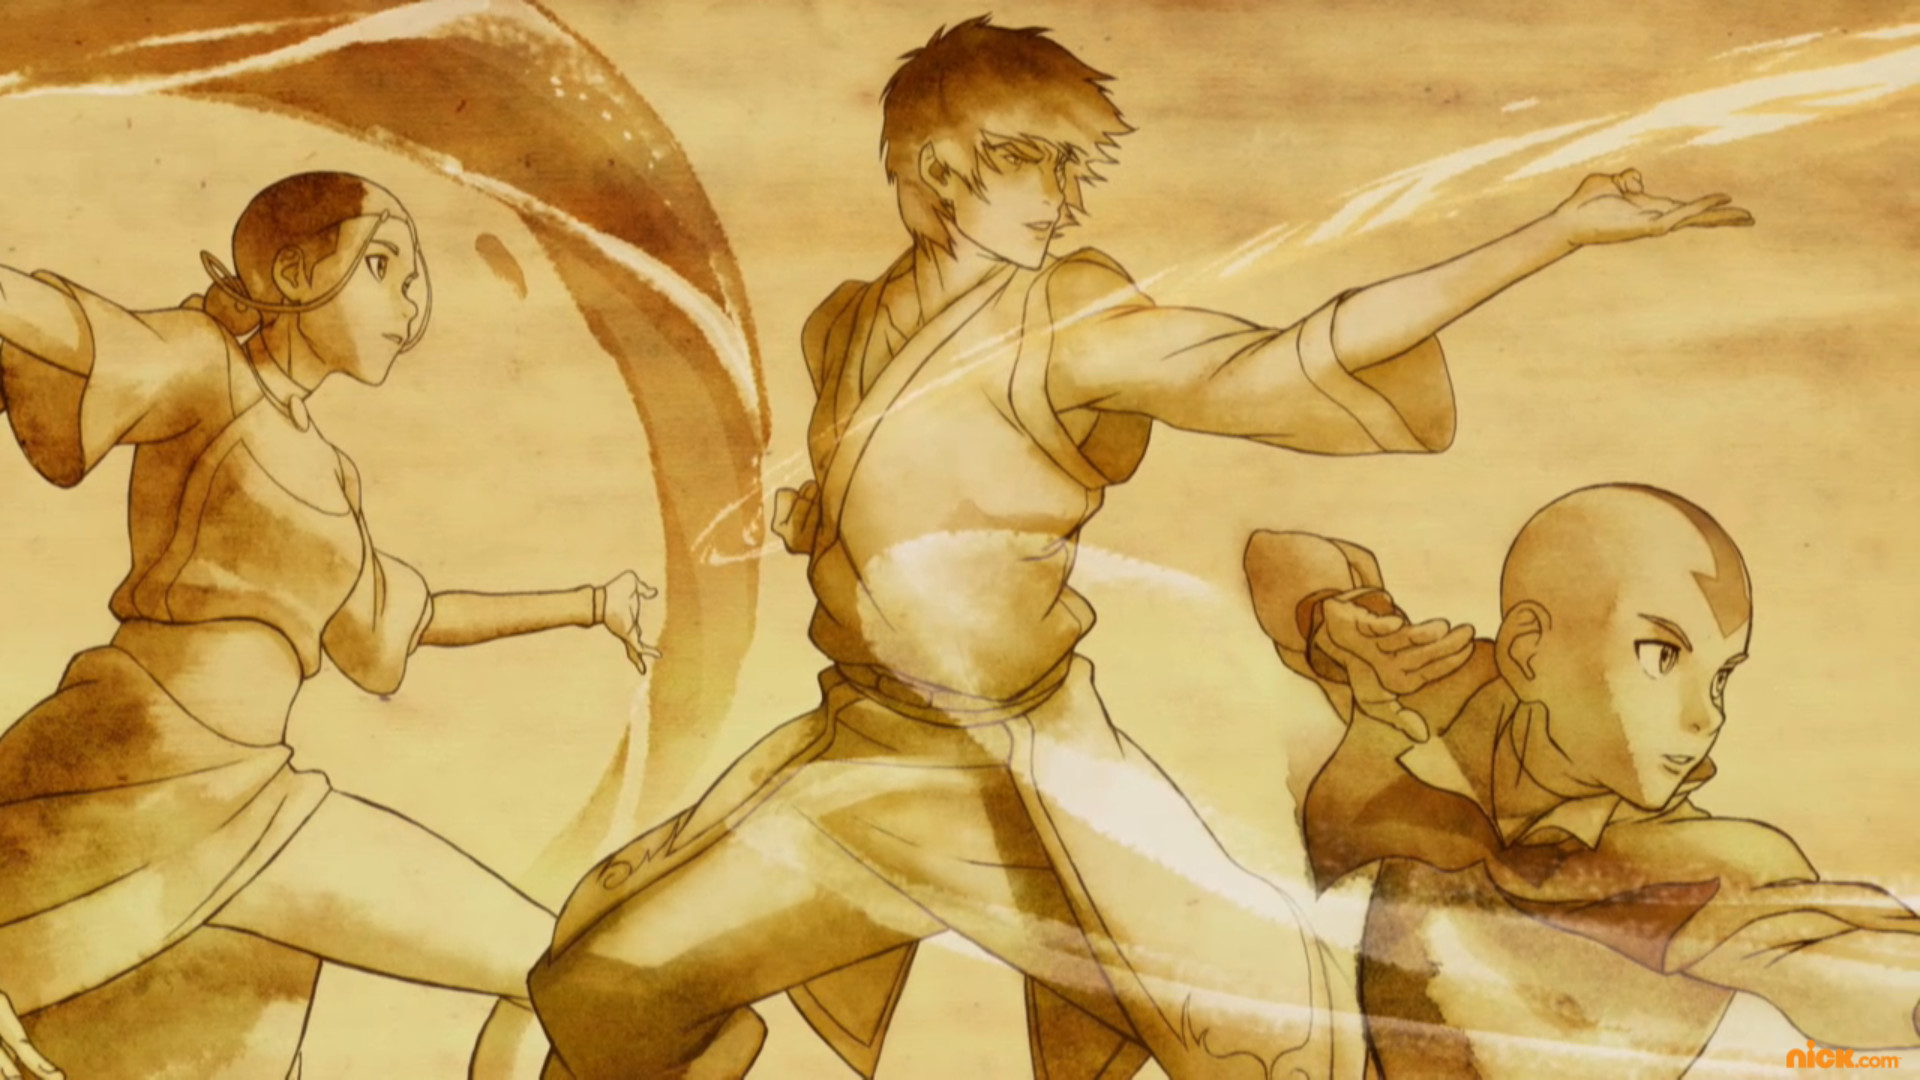 1920x1080 92 Avatar: The Legend Of Korra HD Wallpapers | Backgrounds - Wallpaper  Abyss - Page 2